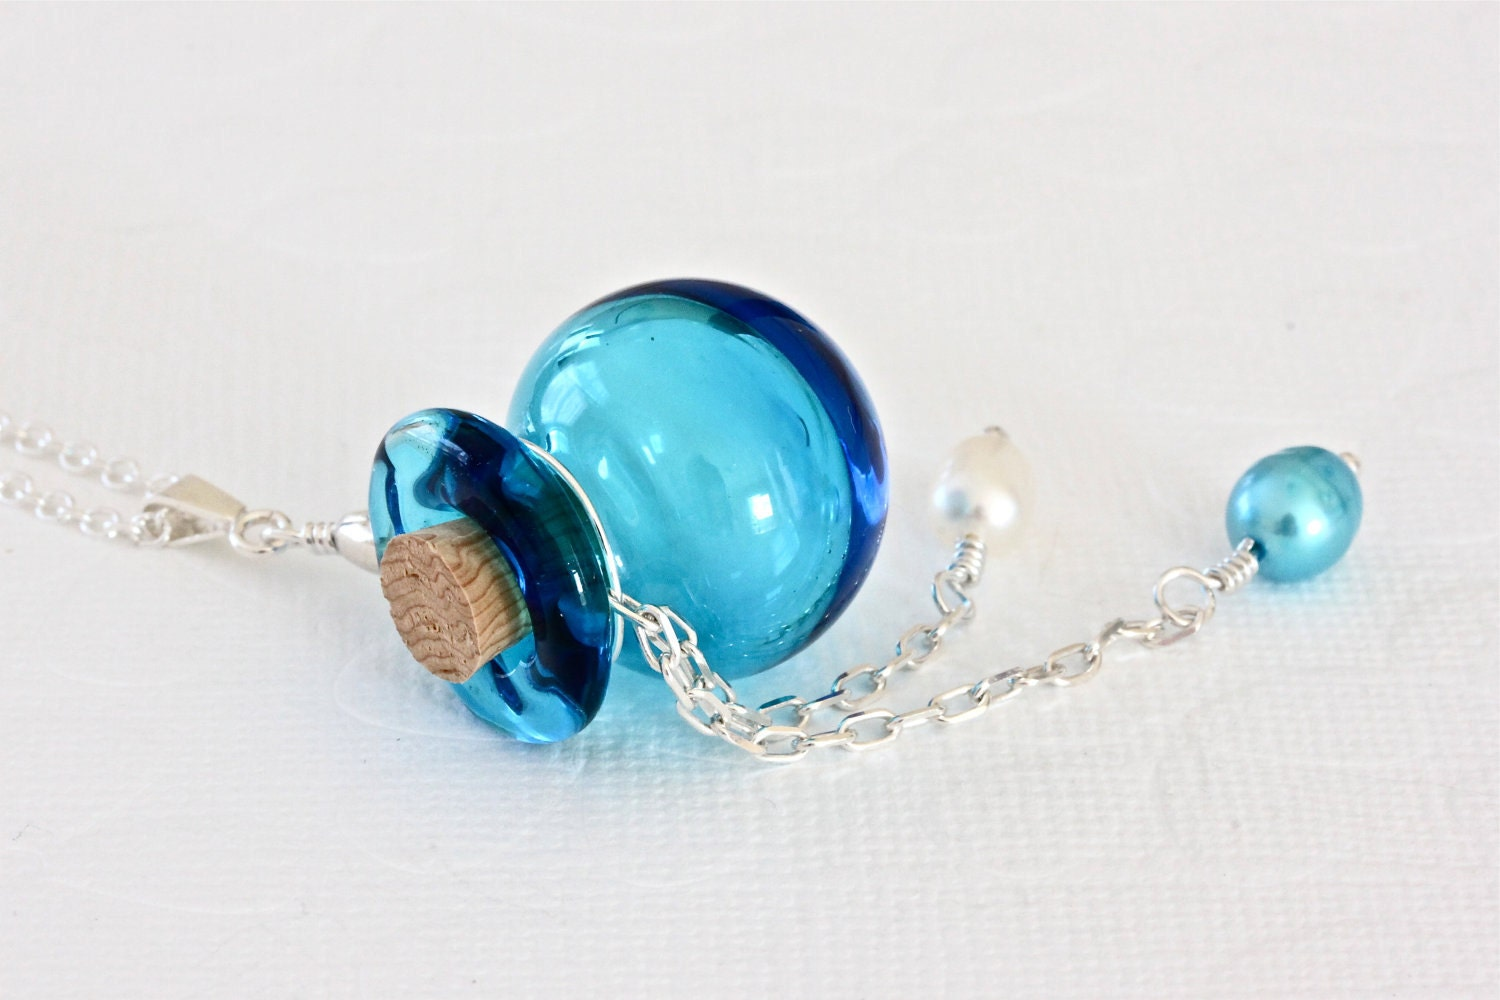 Glass Pendant Necklace, Blue Perfume Bottle Necklace, Murano Glass Jewelry - ThePassionatePearl